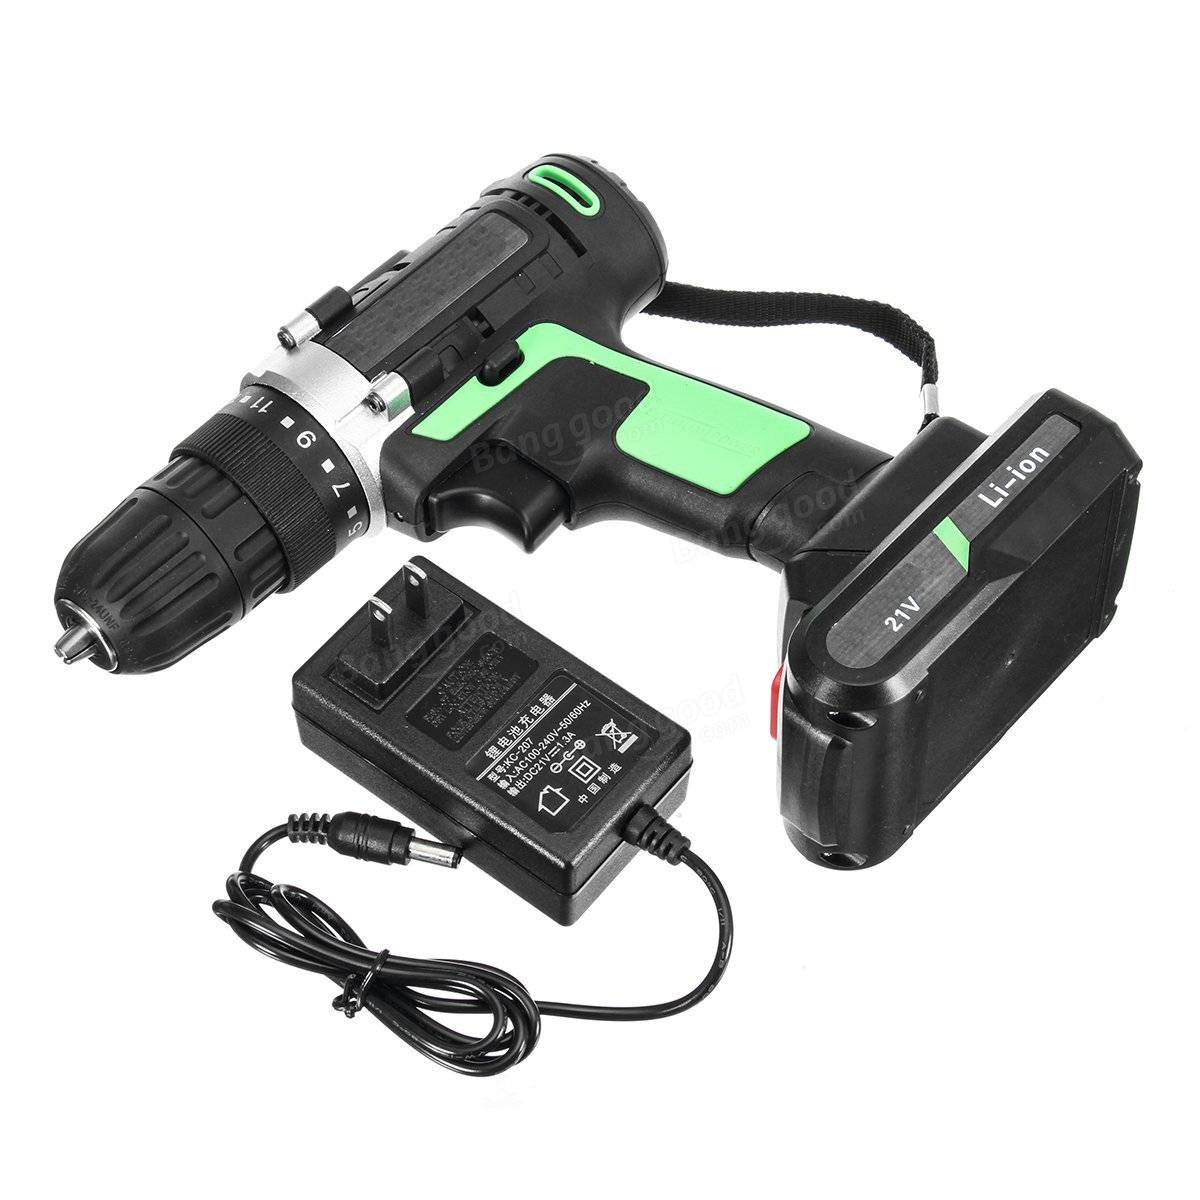 21V Cordless Electric Screwdriver Driver Power Lithium Rechargeable Screwdriver 1 Charger 1 Battery